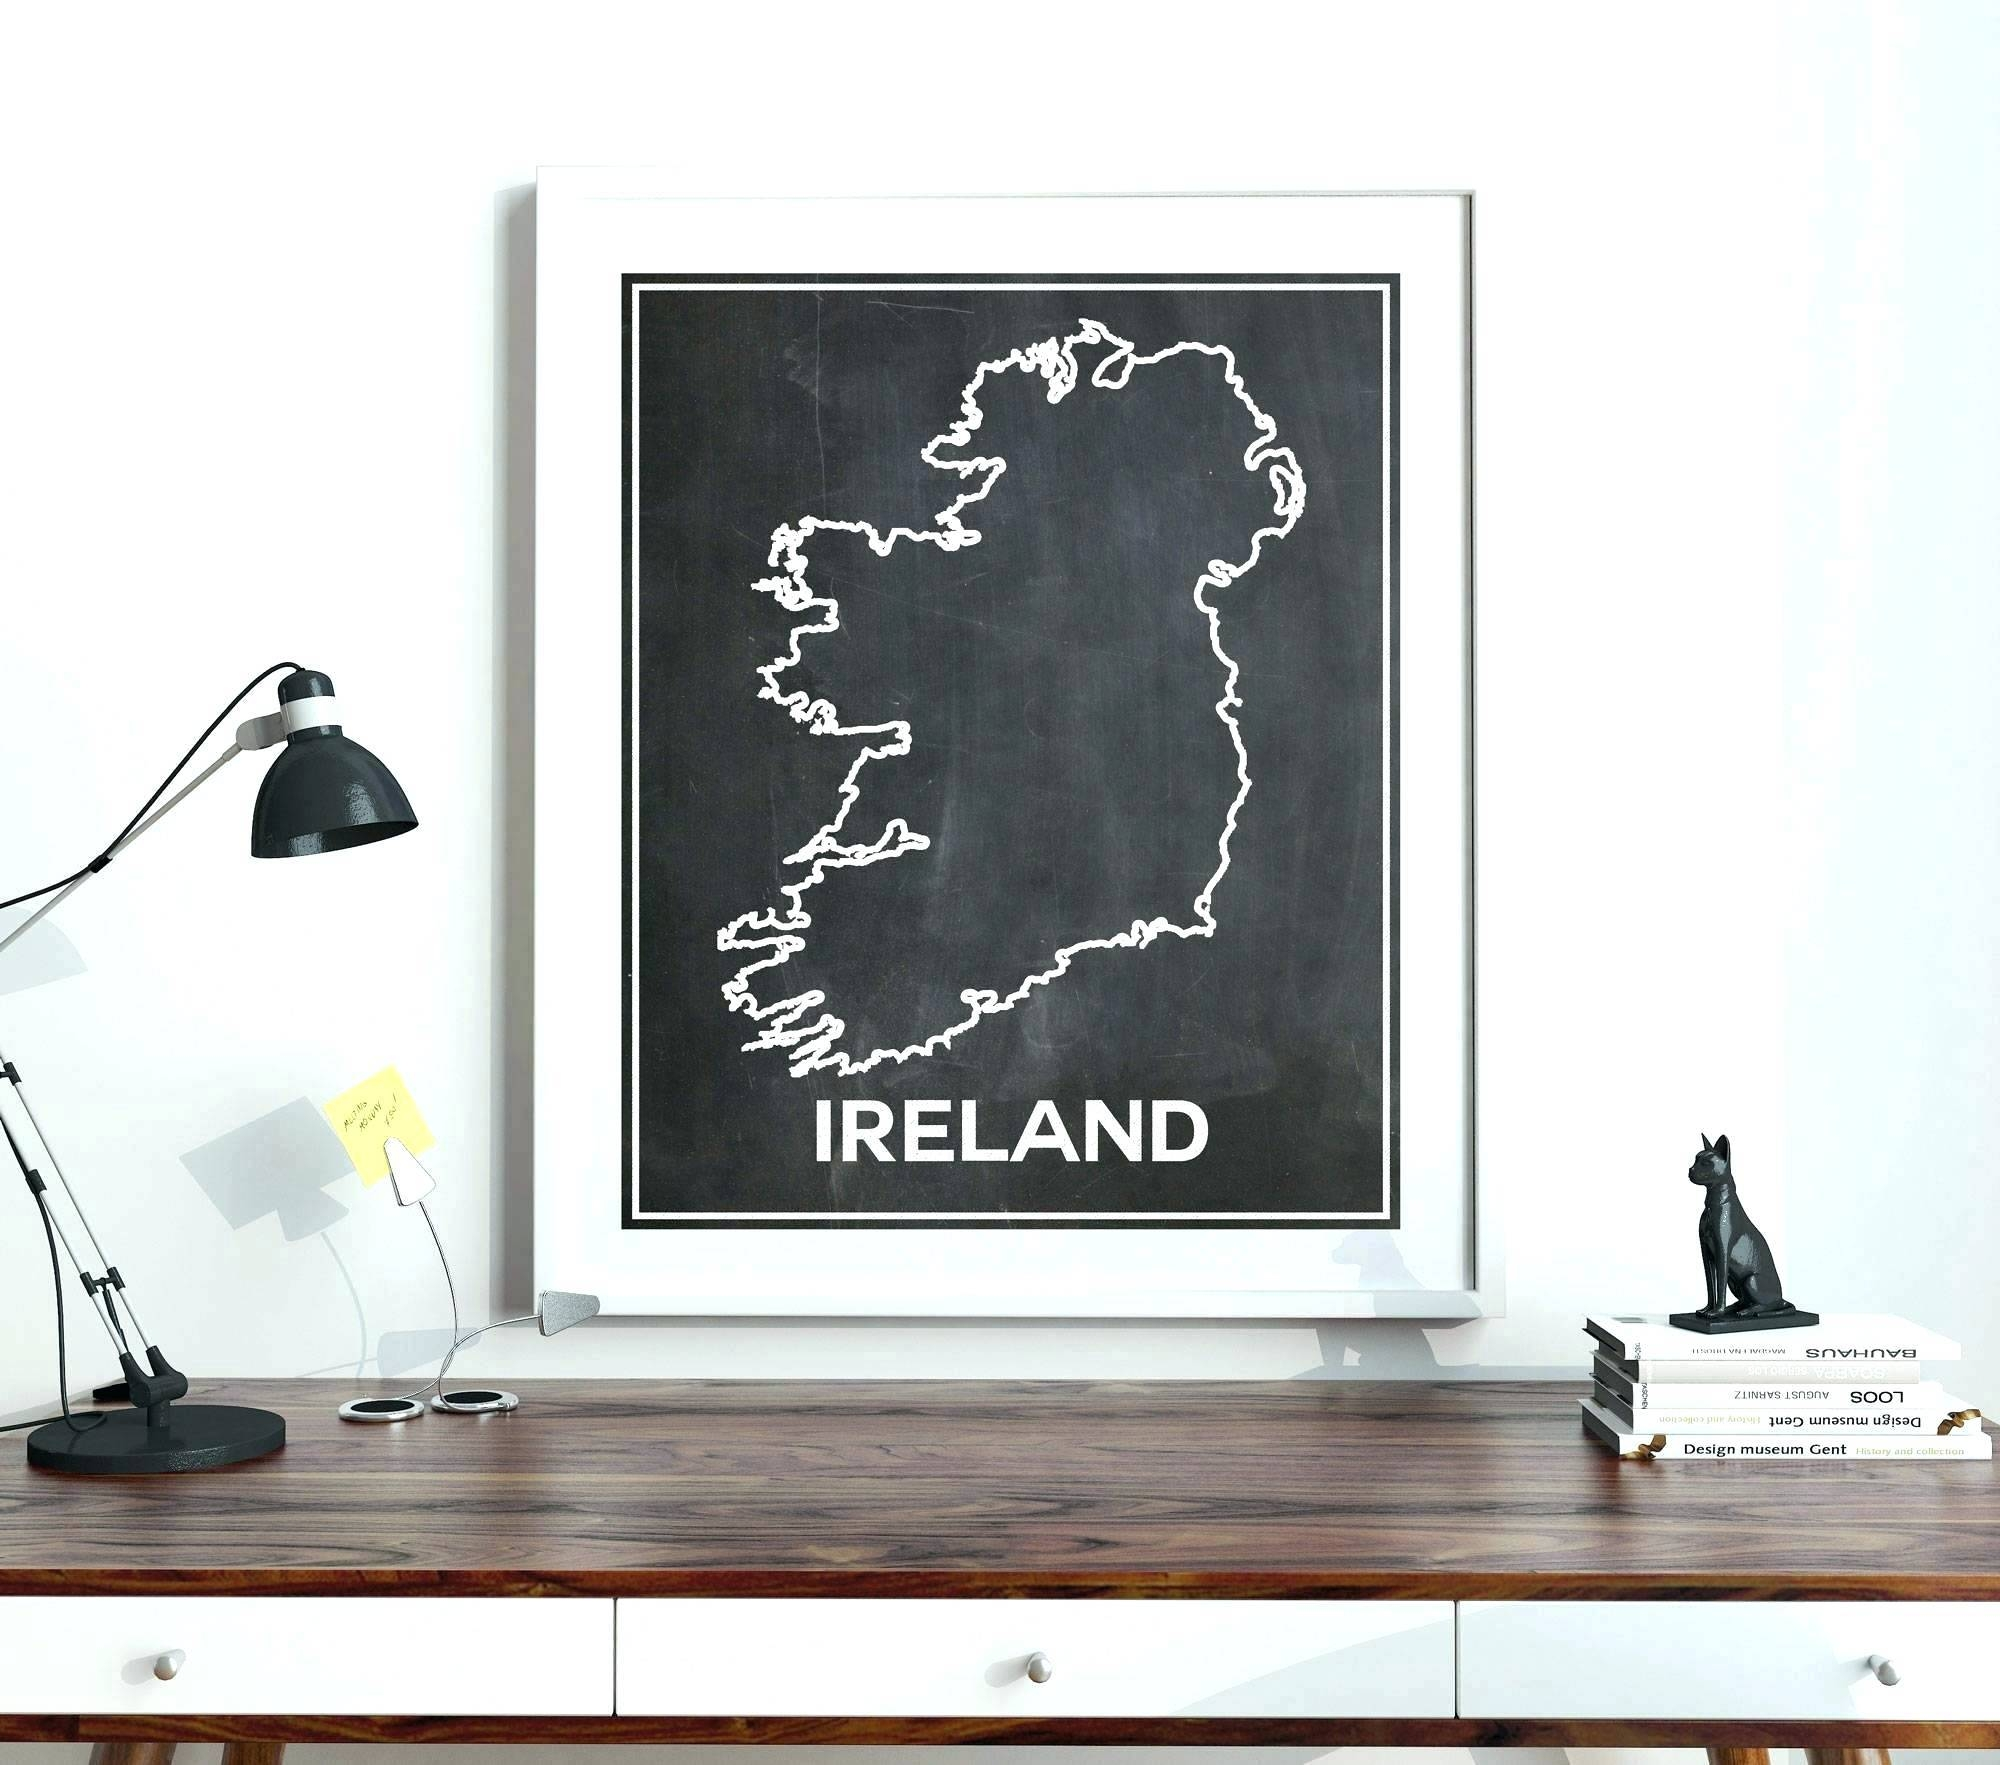 Wall Decals Ireland – Gutesleben Intended For Current Ireland Metal Wall Art (View 1 of 20)